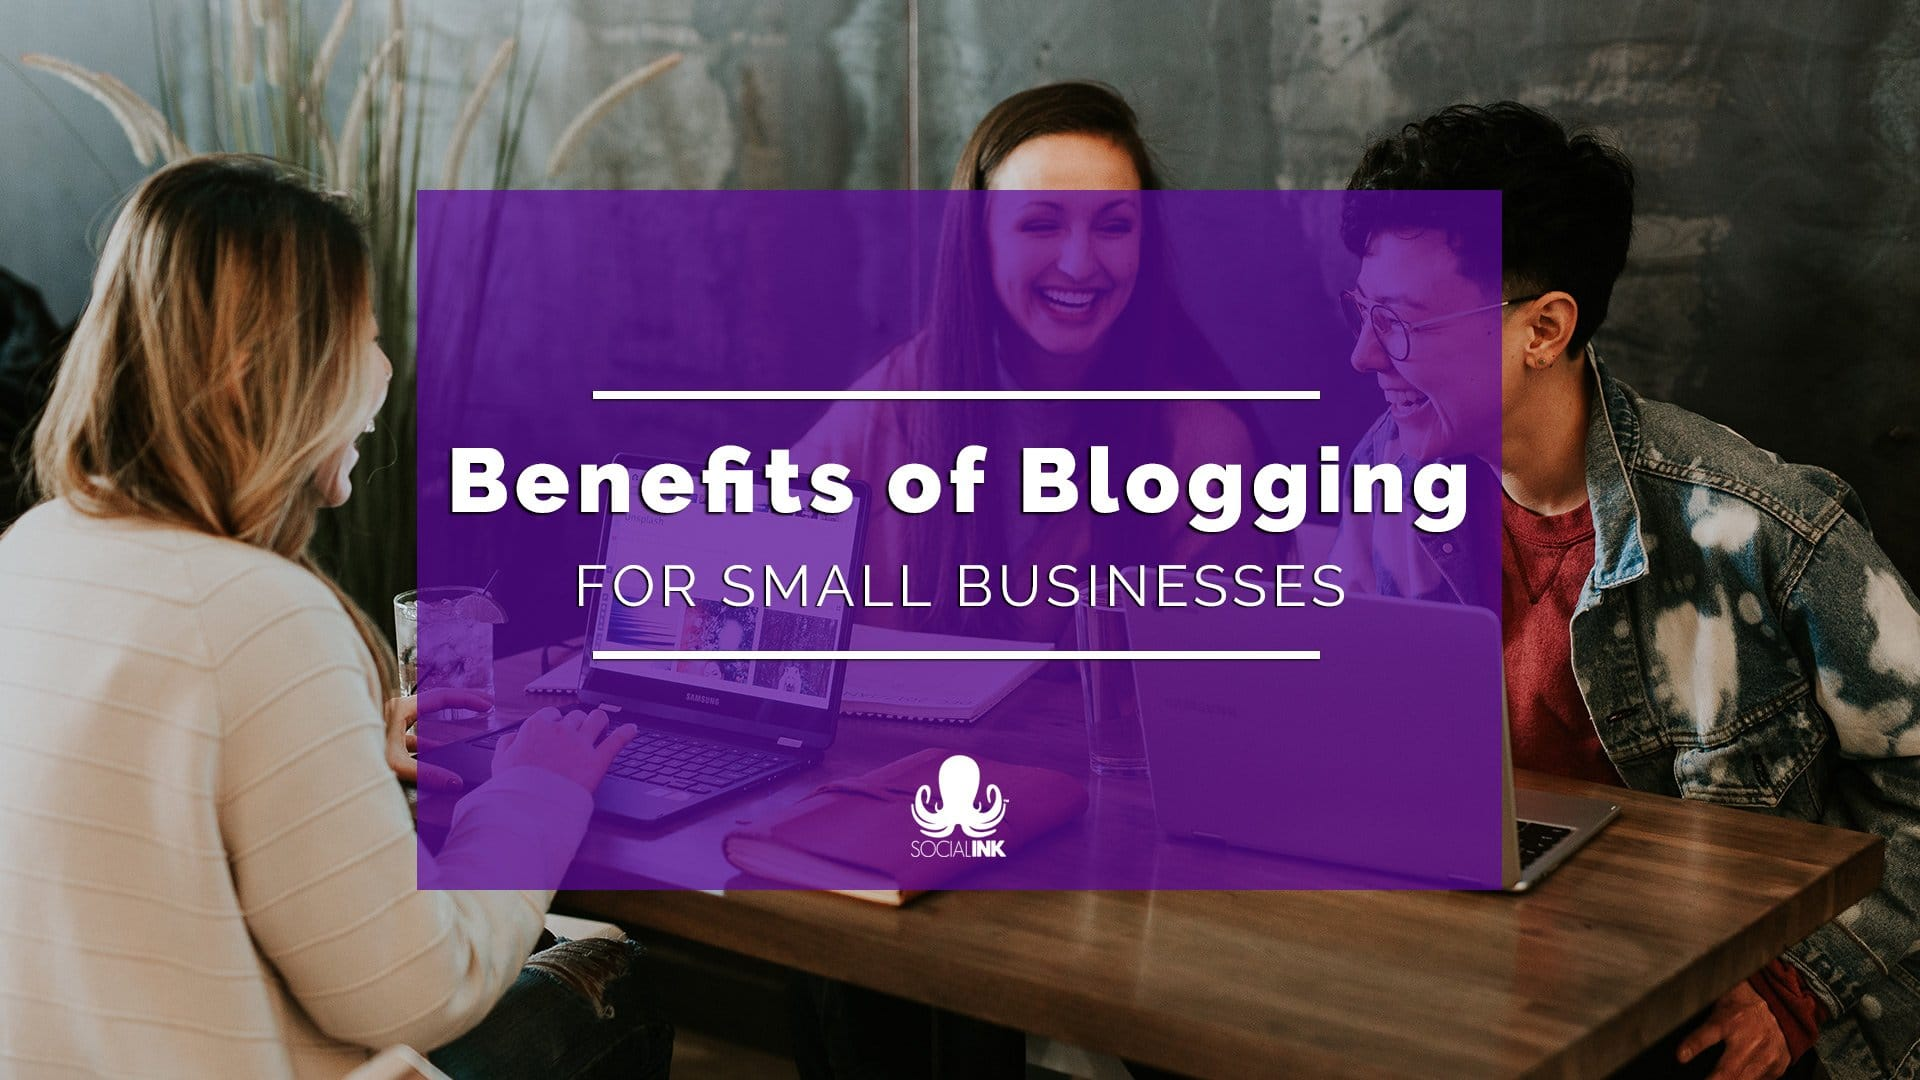 Blogging for Business: What Are the Benefits?